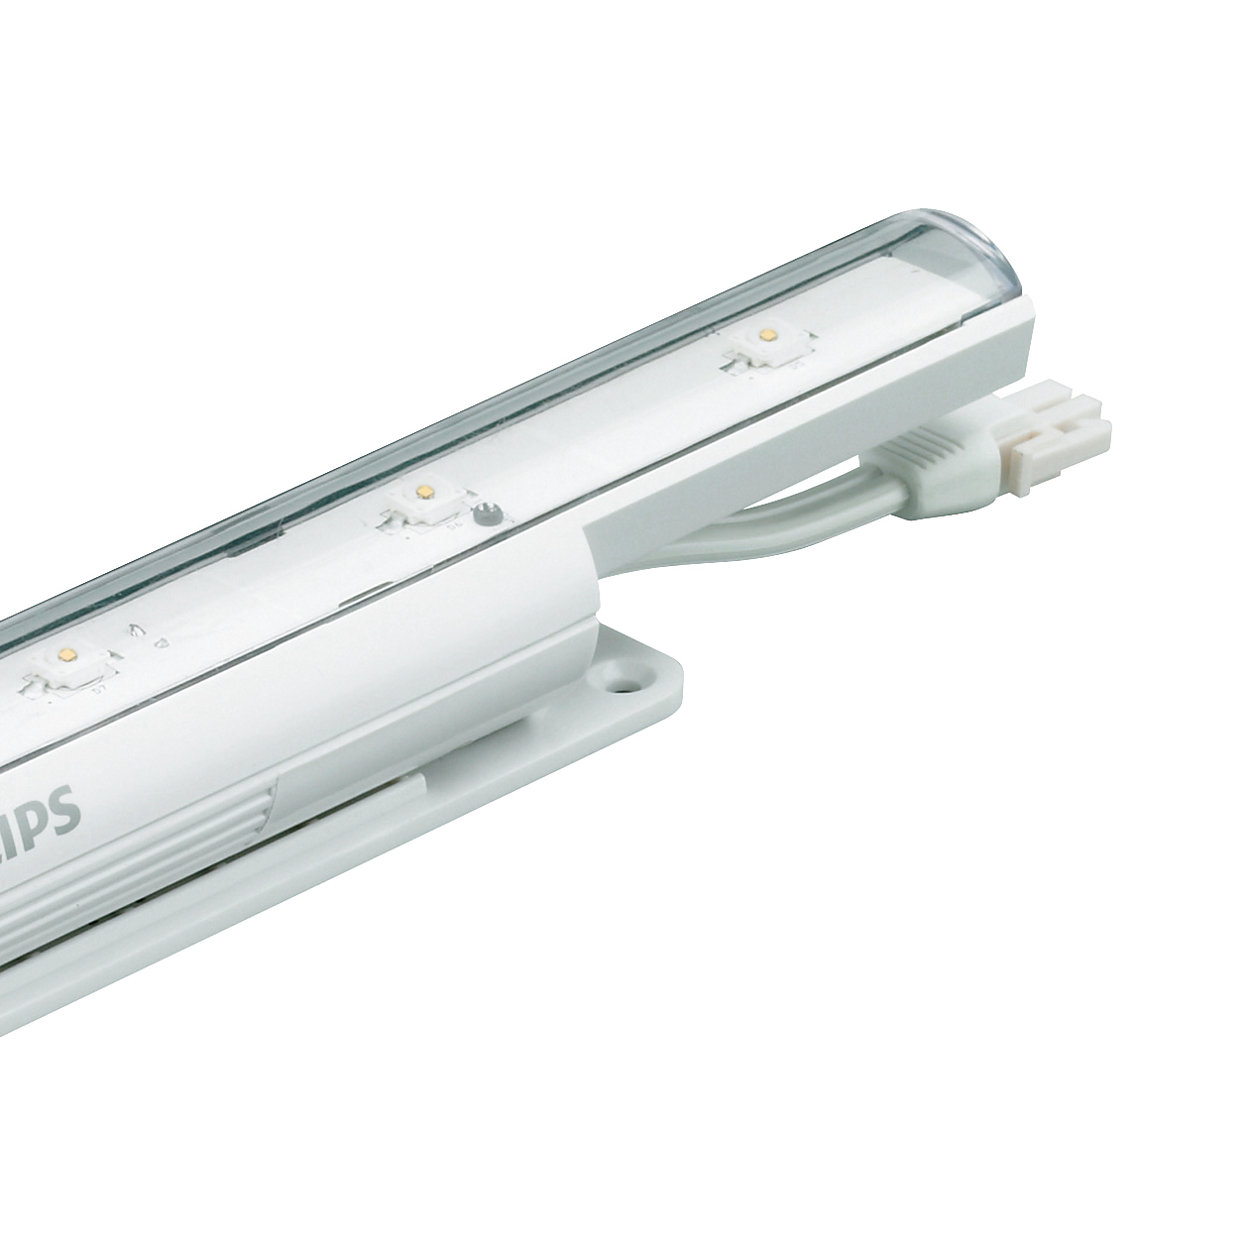 eW Cove QLX Powercore – Performance interior linear LED cove and accent luminaire with solid white light